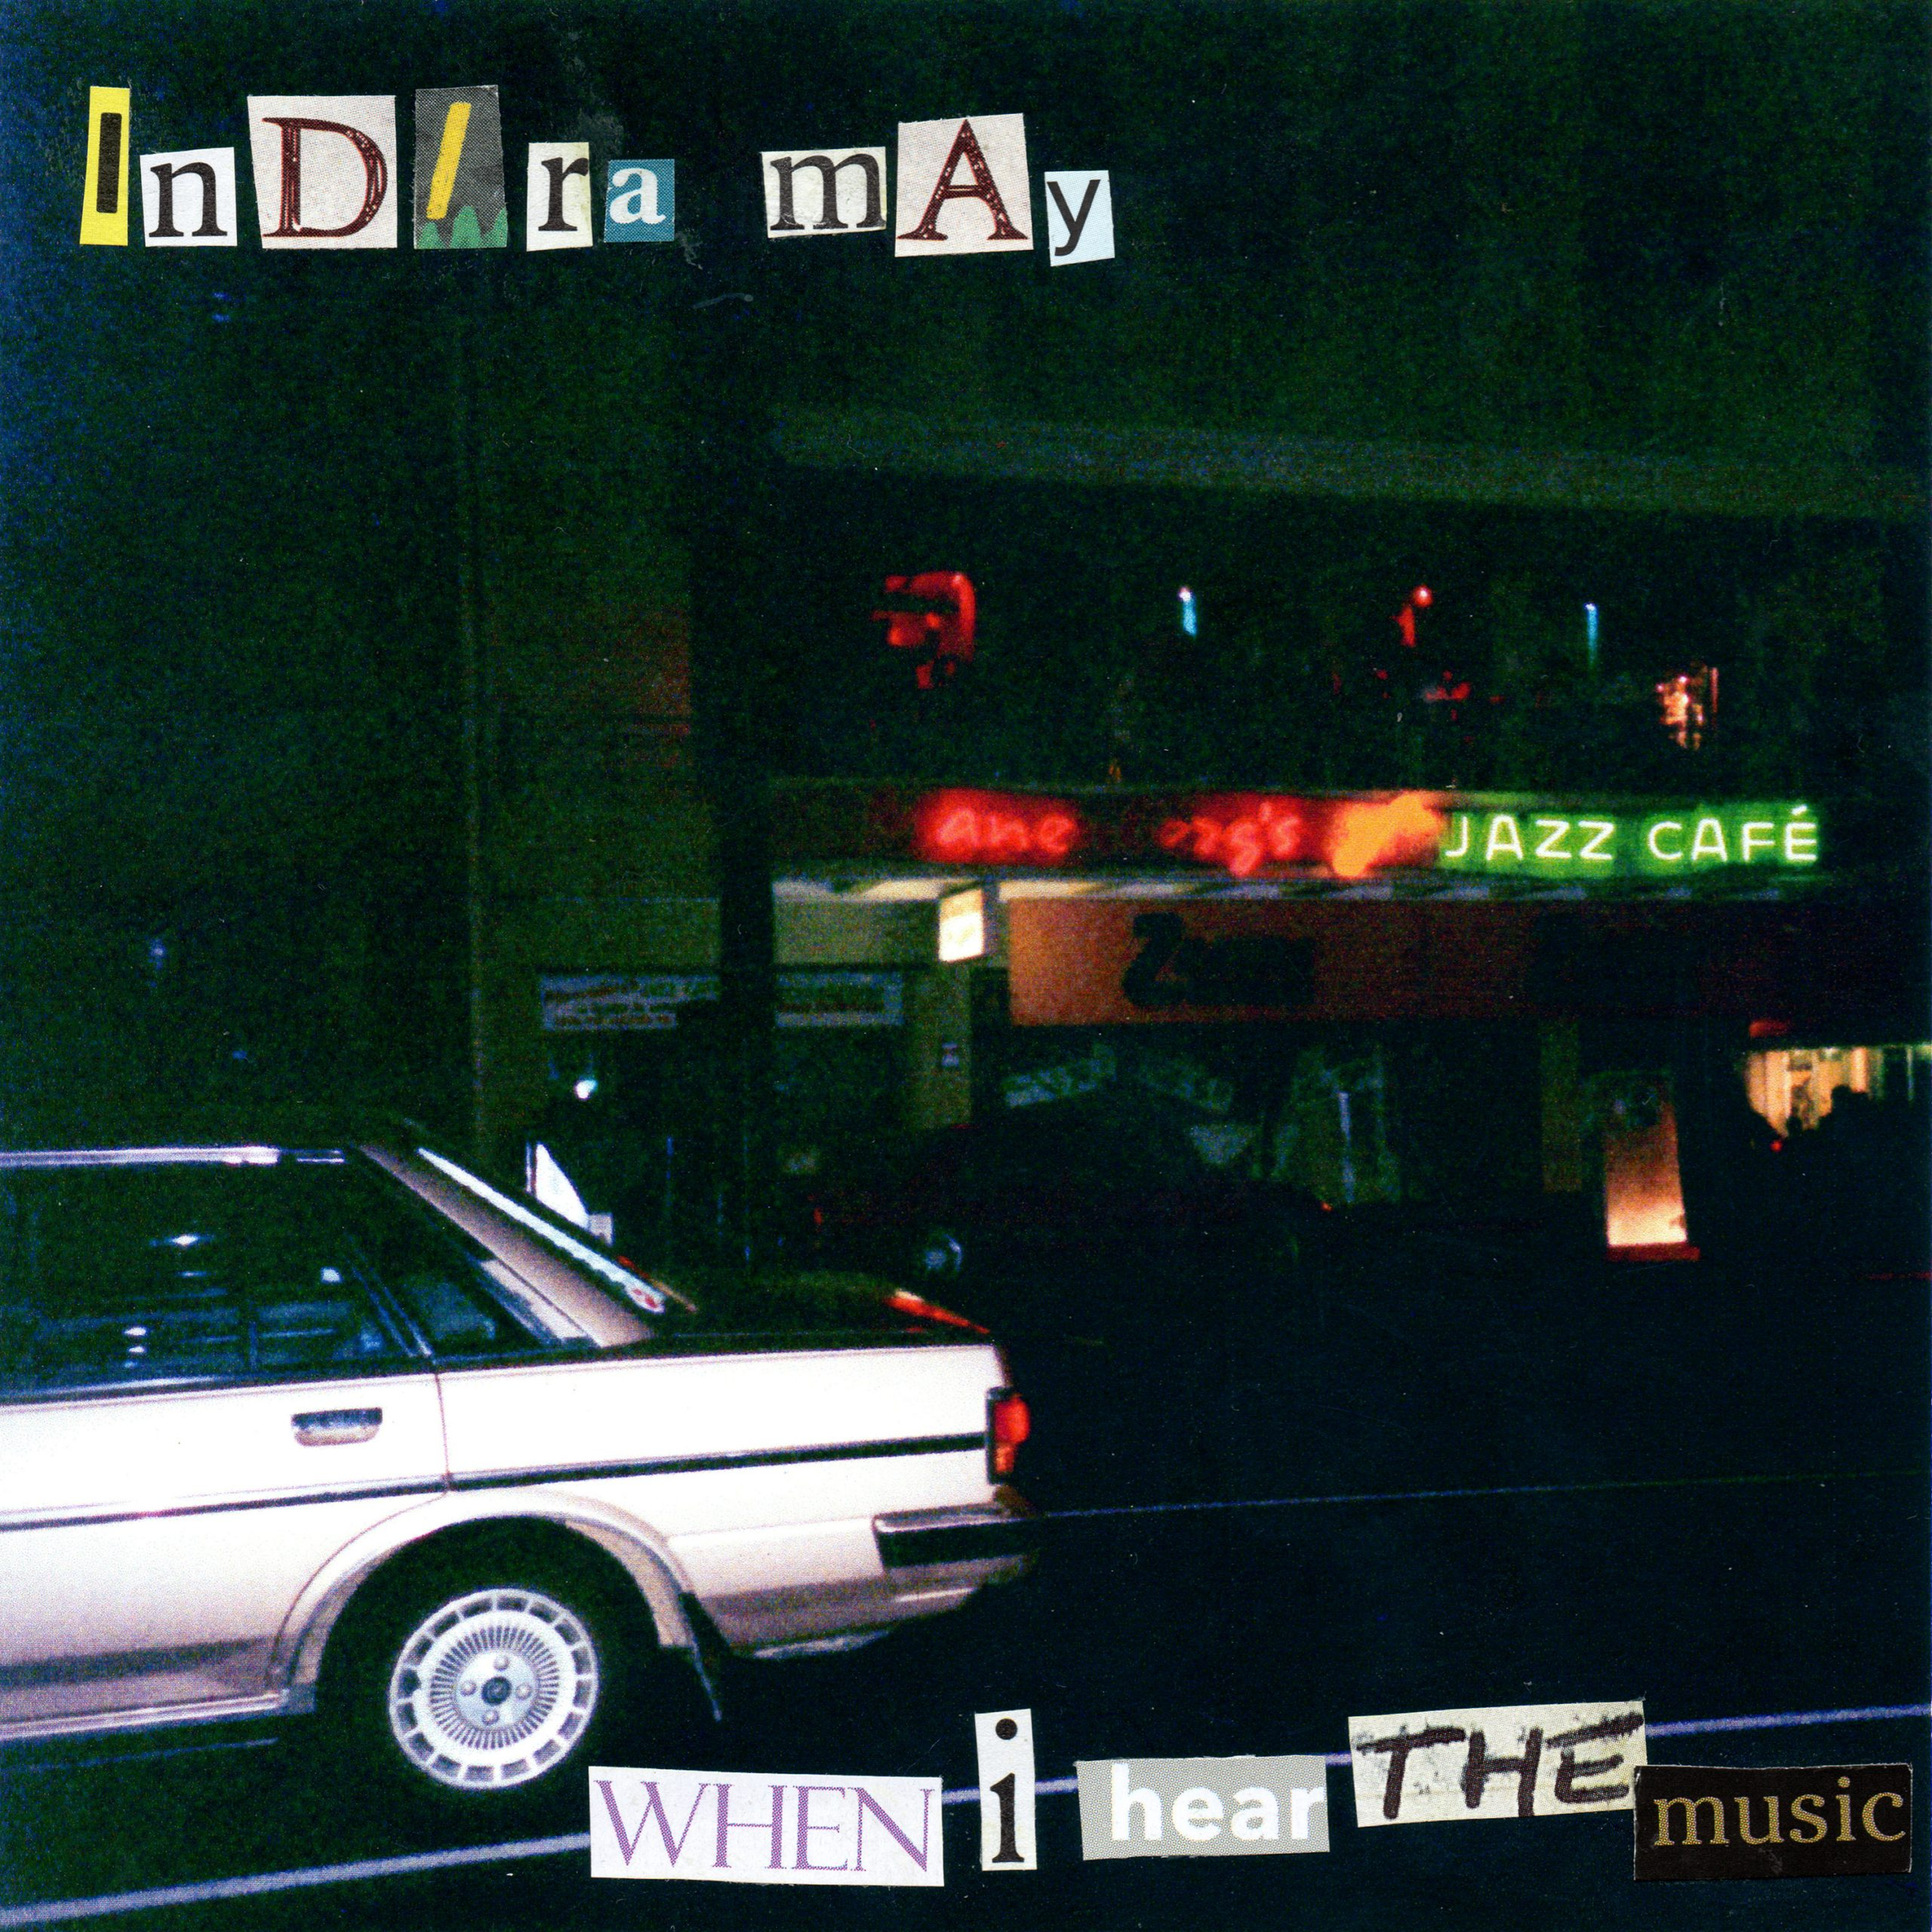 """Stereo Embers' TRACK OF THE DAY: Indira May's """"When I Hear The Music"""""""